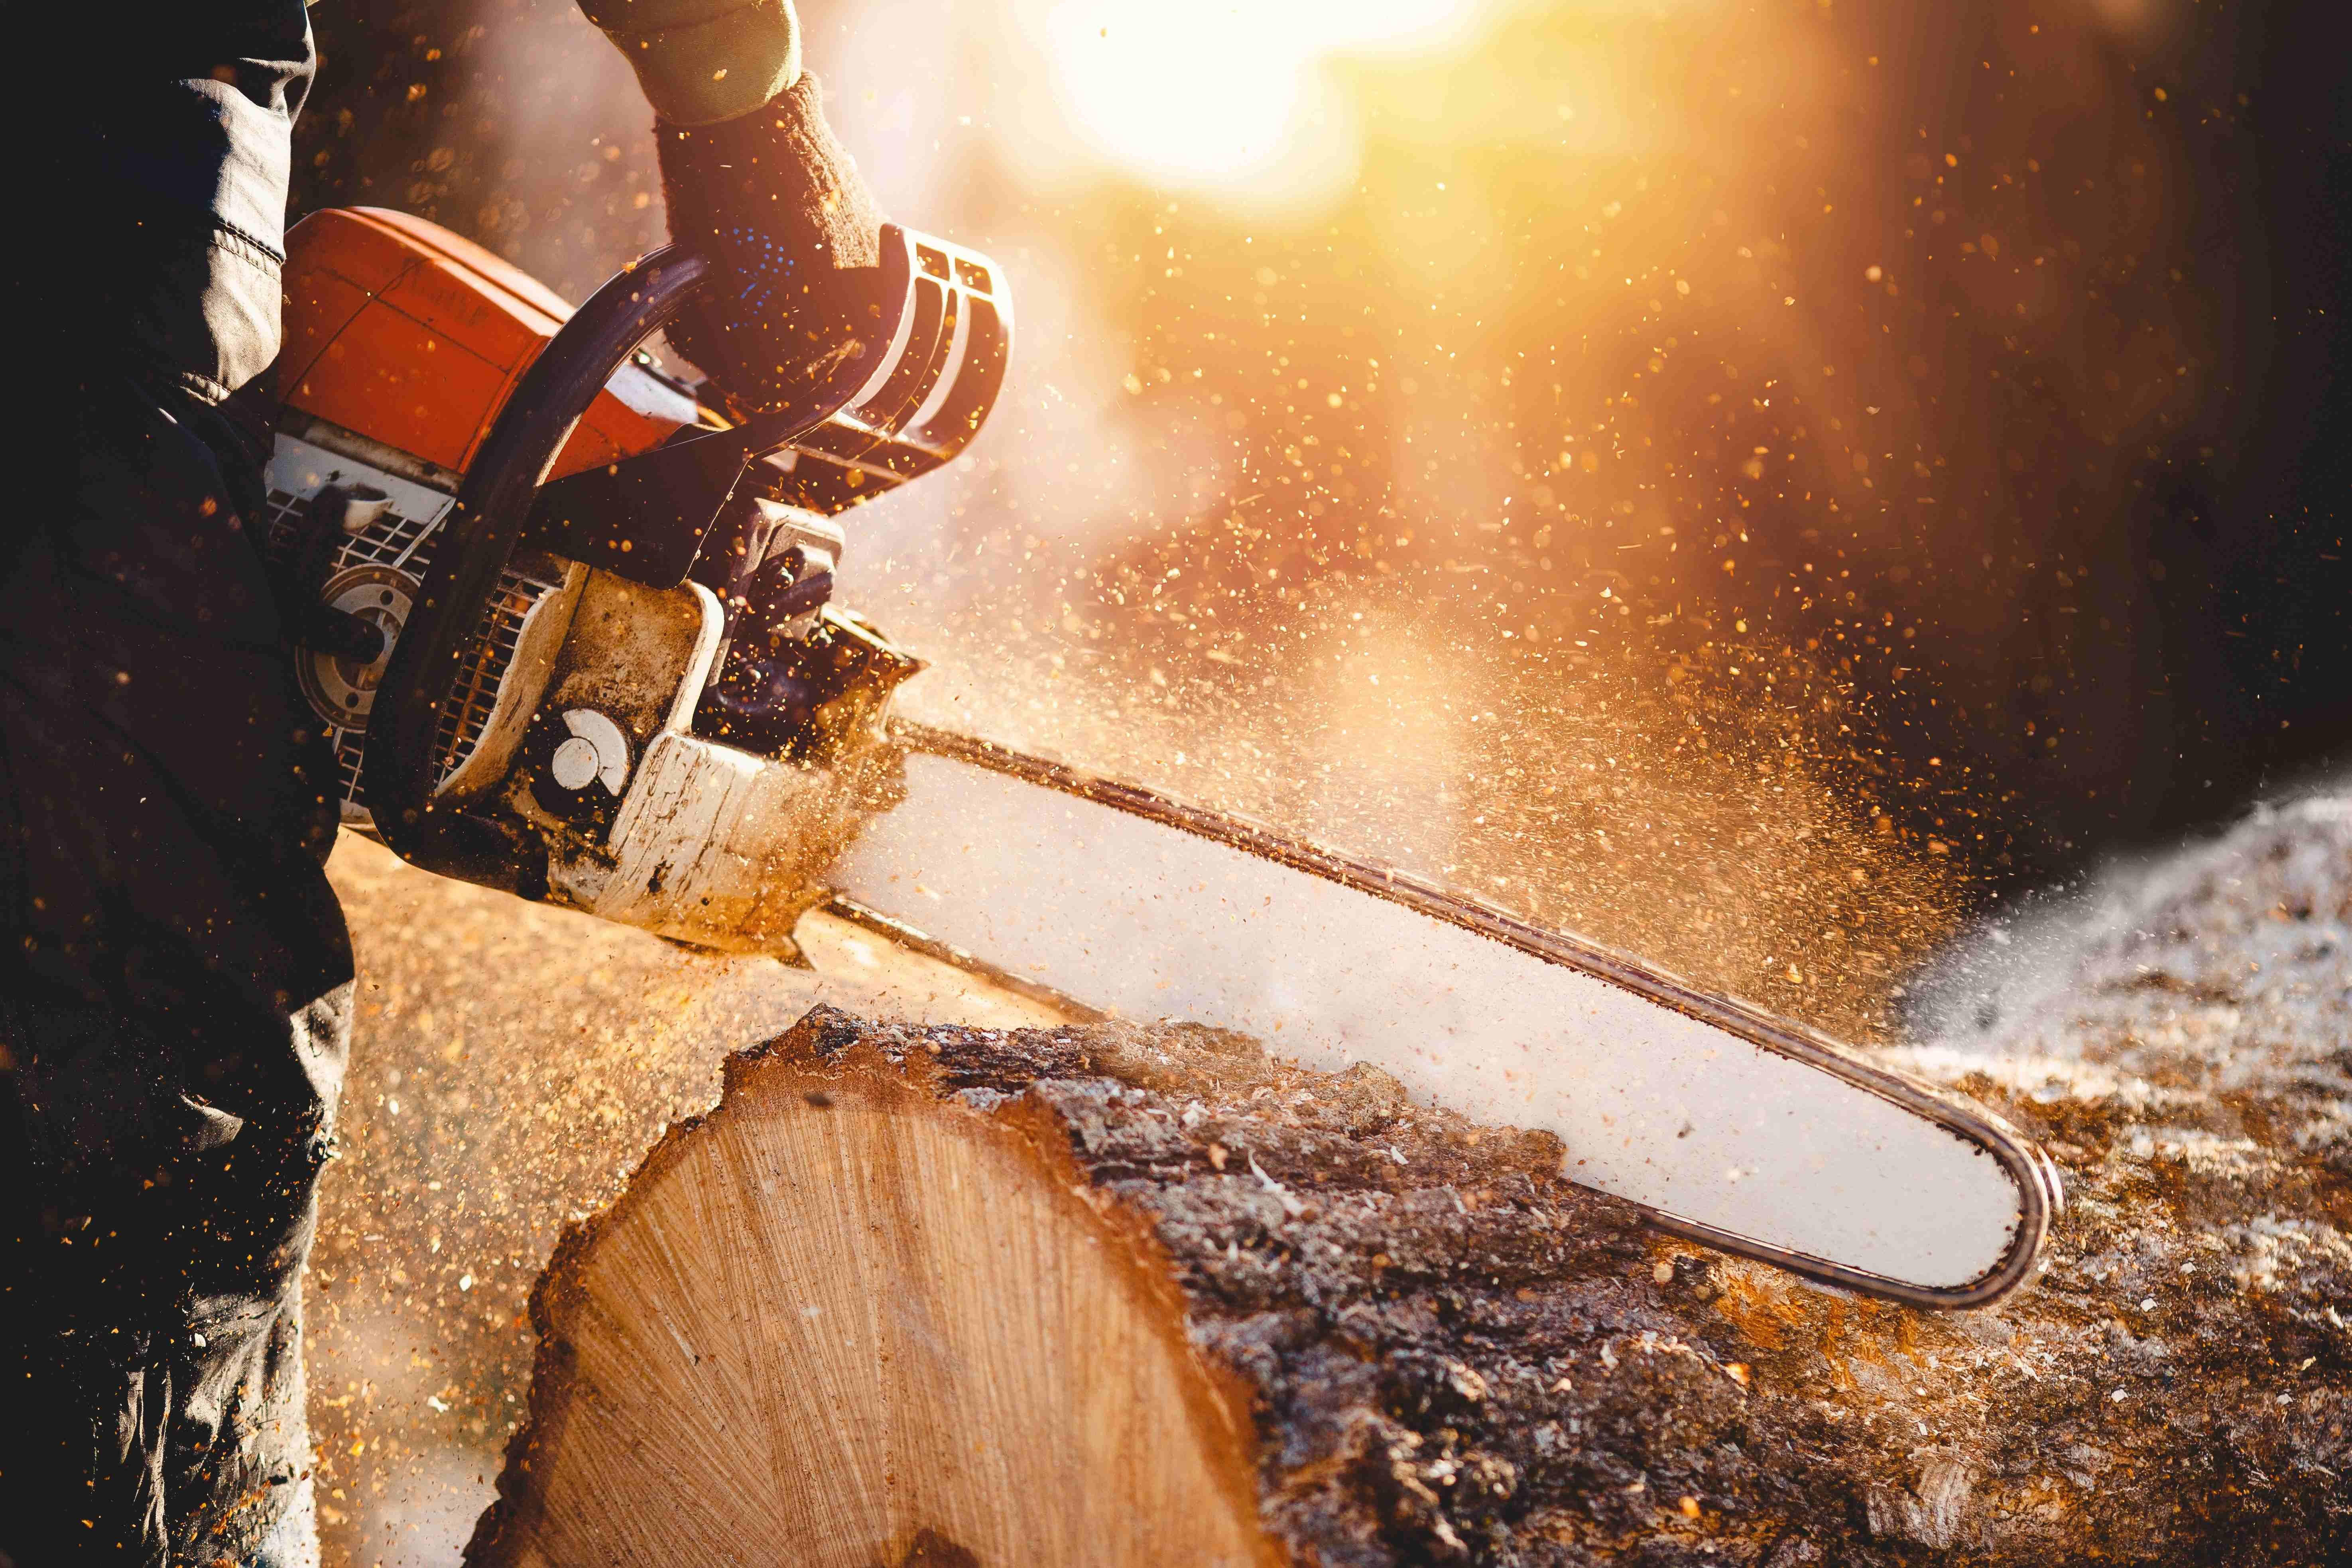 Chainsaw or power pruner: which is right for you?